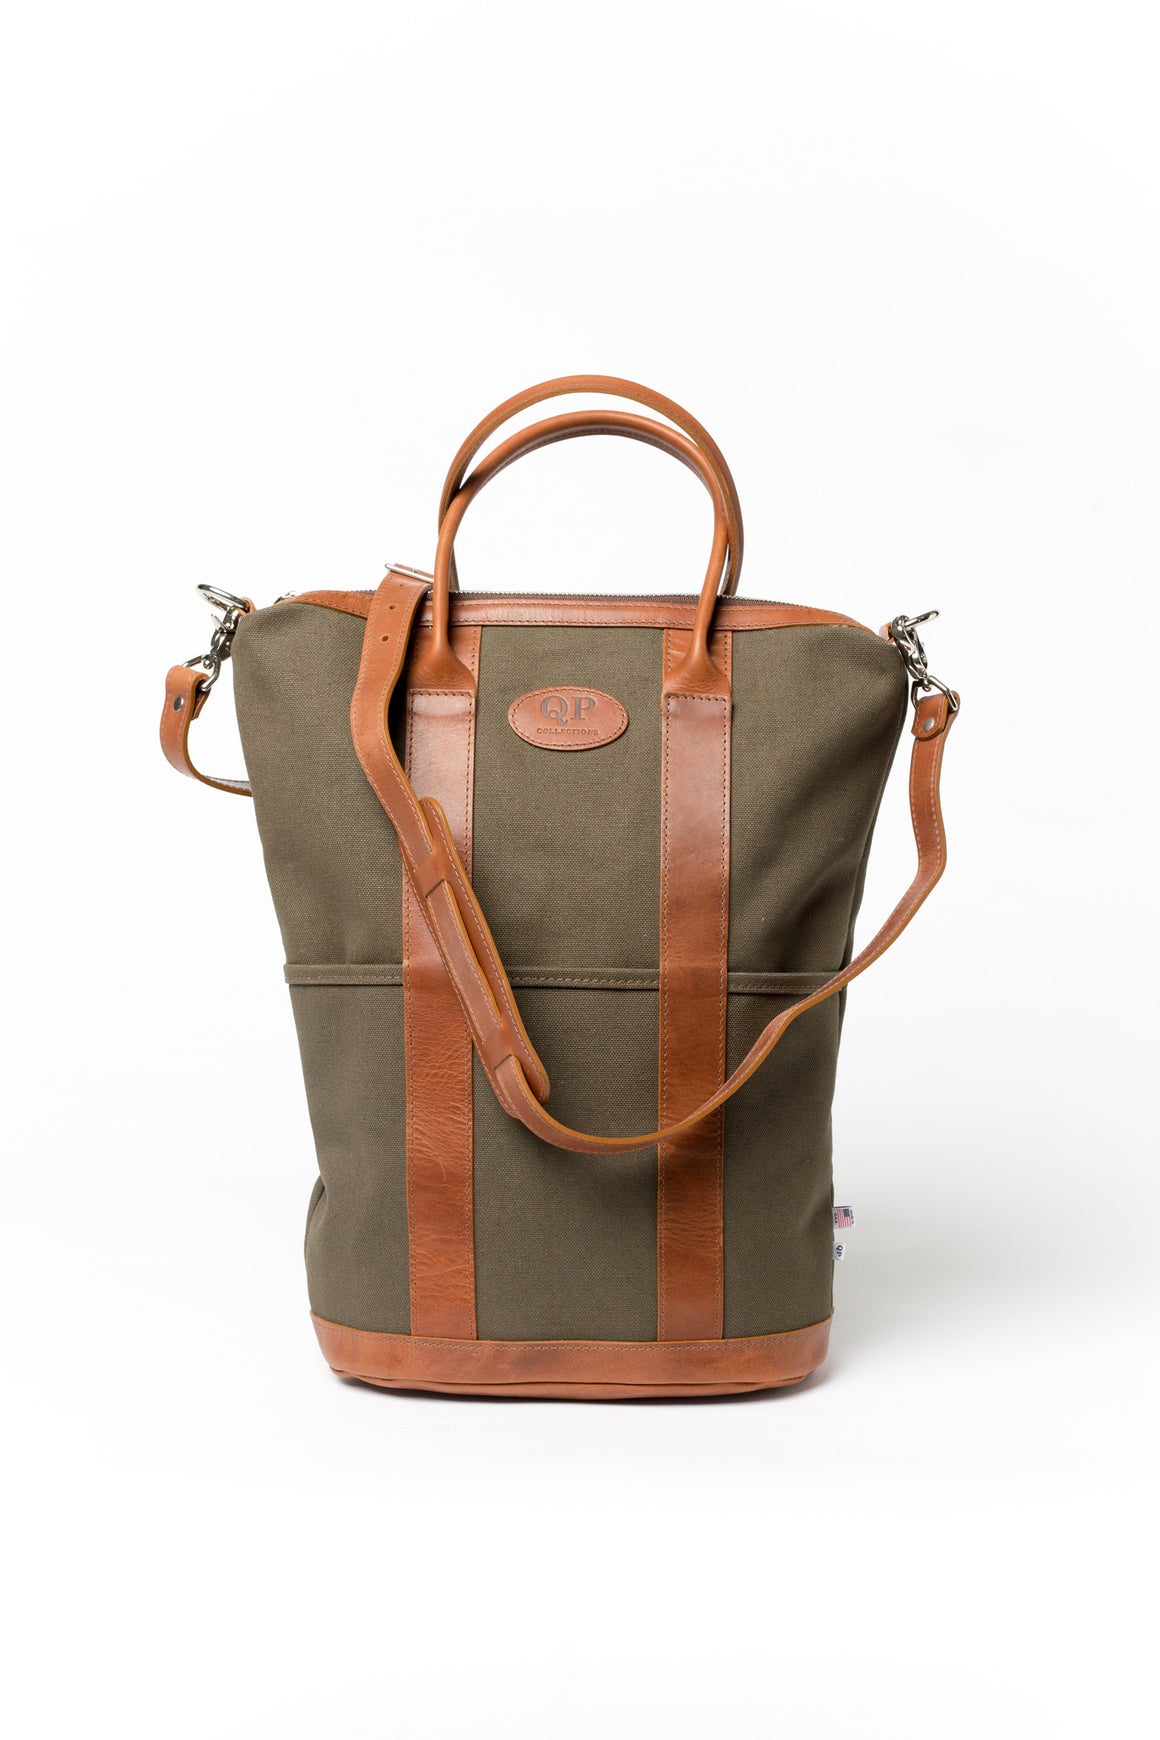 Helmet Bag - Small - Green and Tan